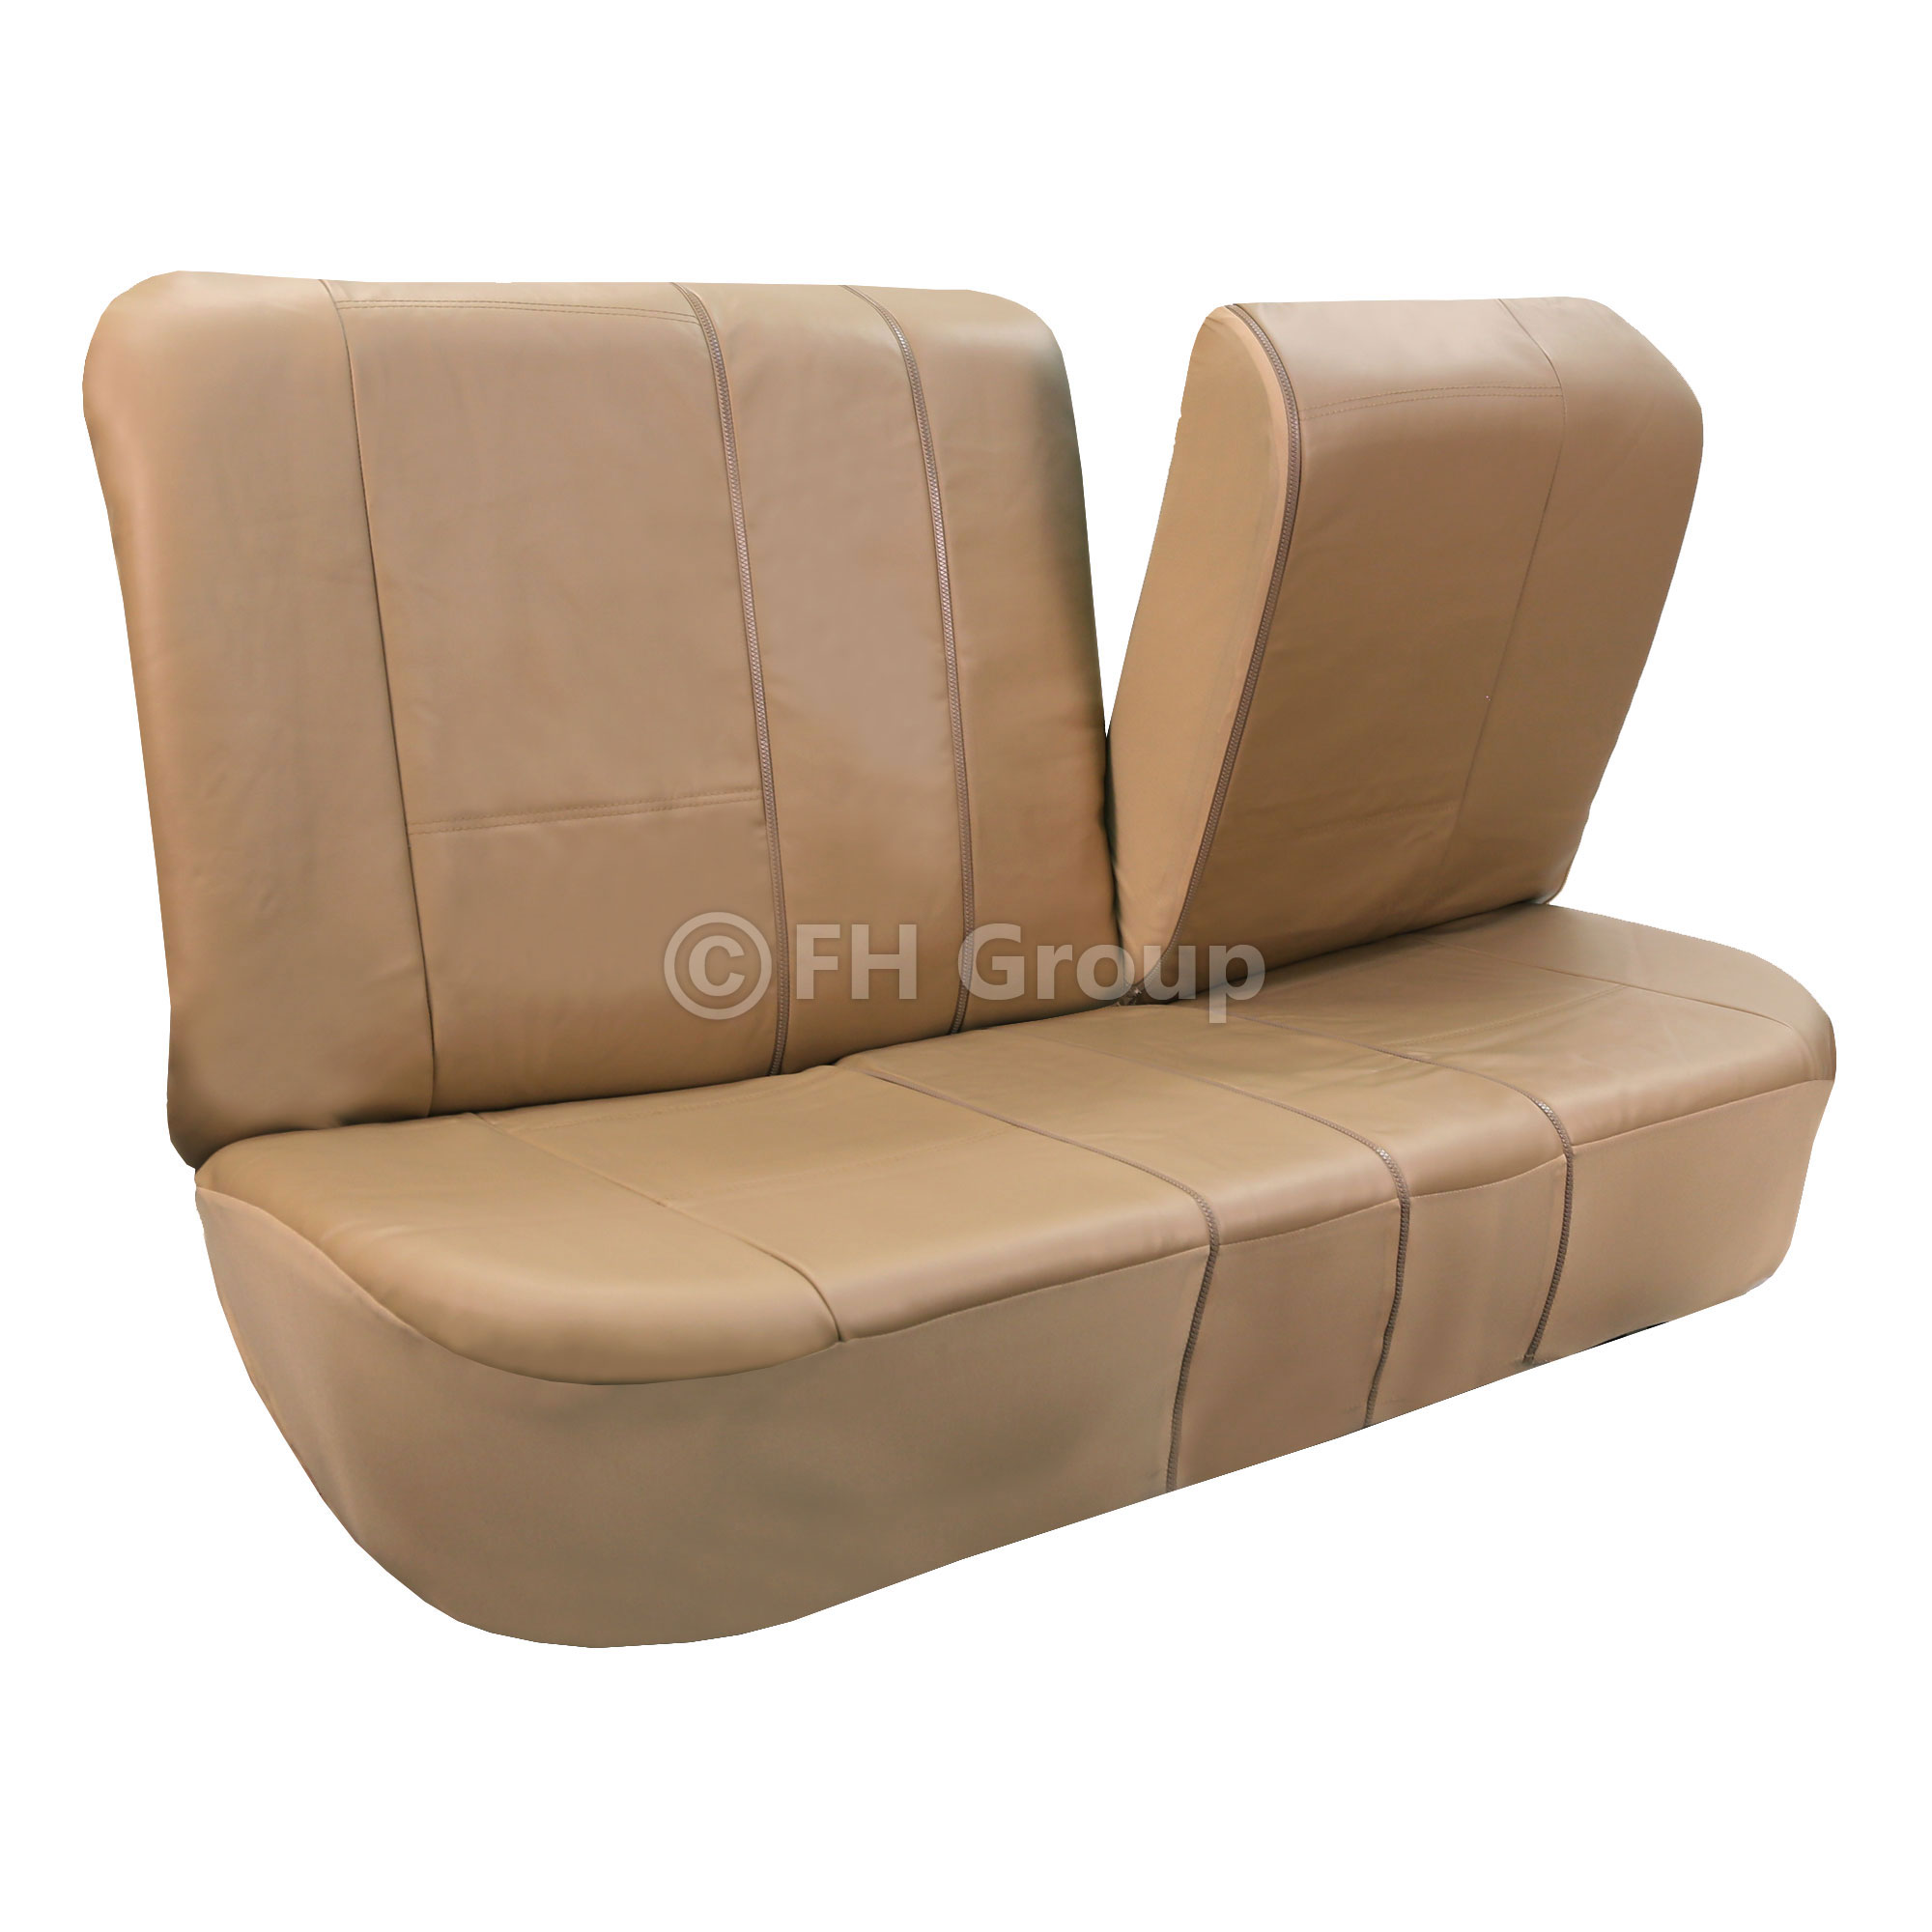 Very Impressive portraiture of  about PU Leather Car Seat Covers w. Carpet Floor Mats for Split Bench with #402F1C color and 2000x2000 pixels